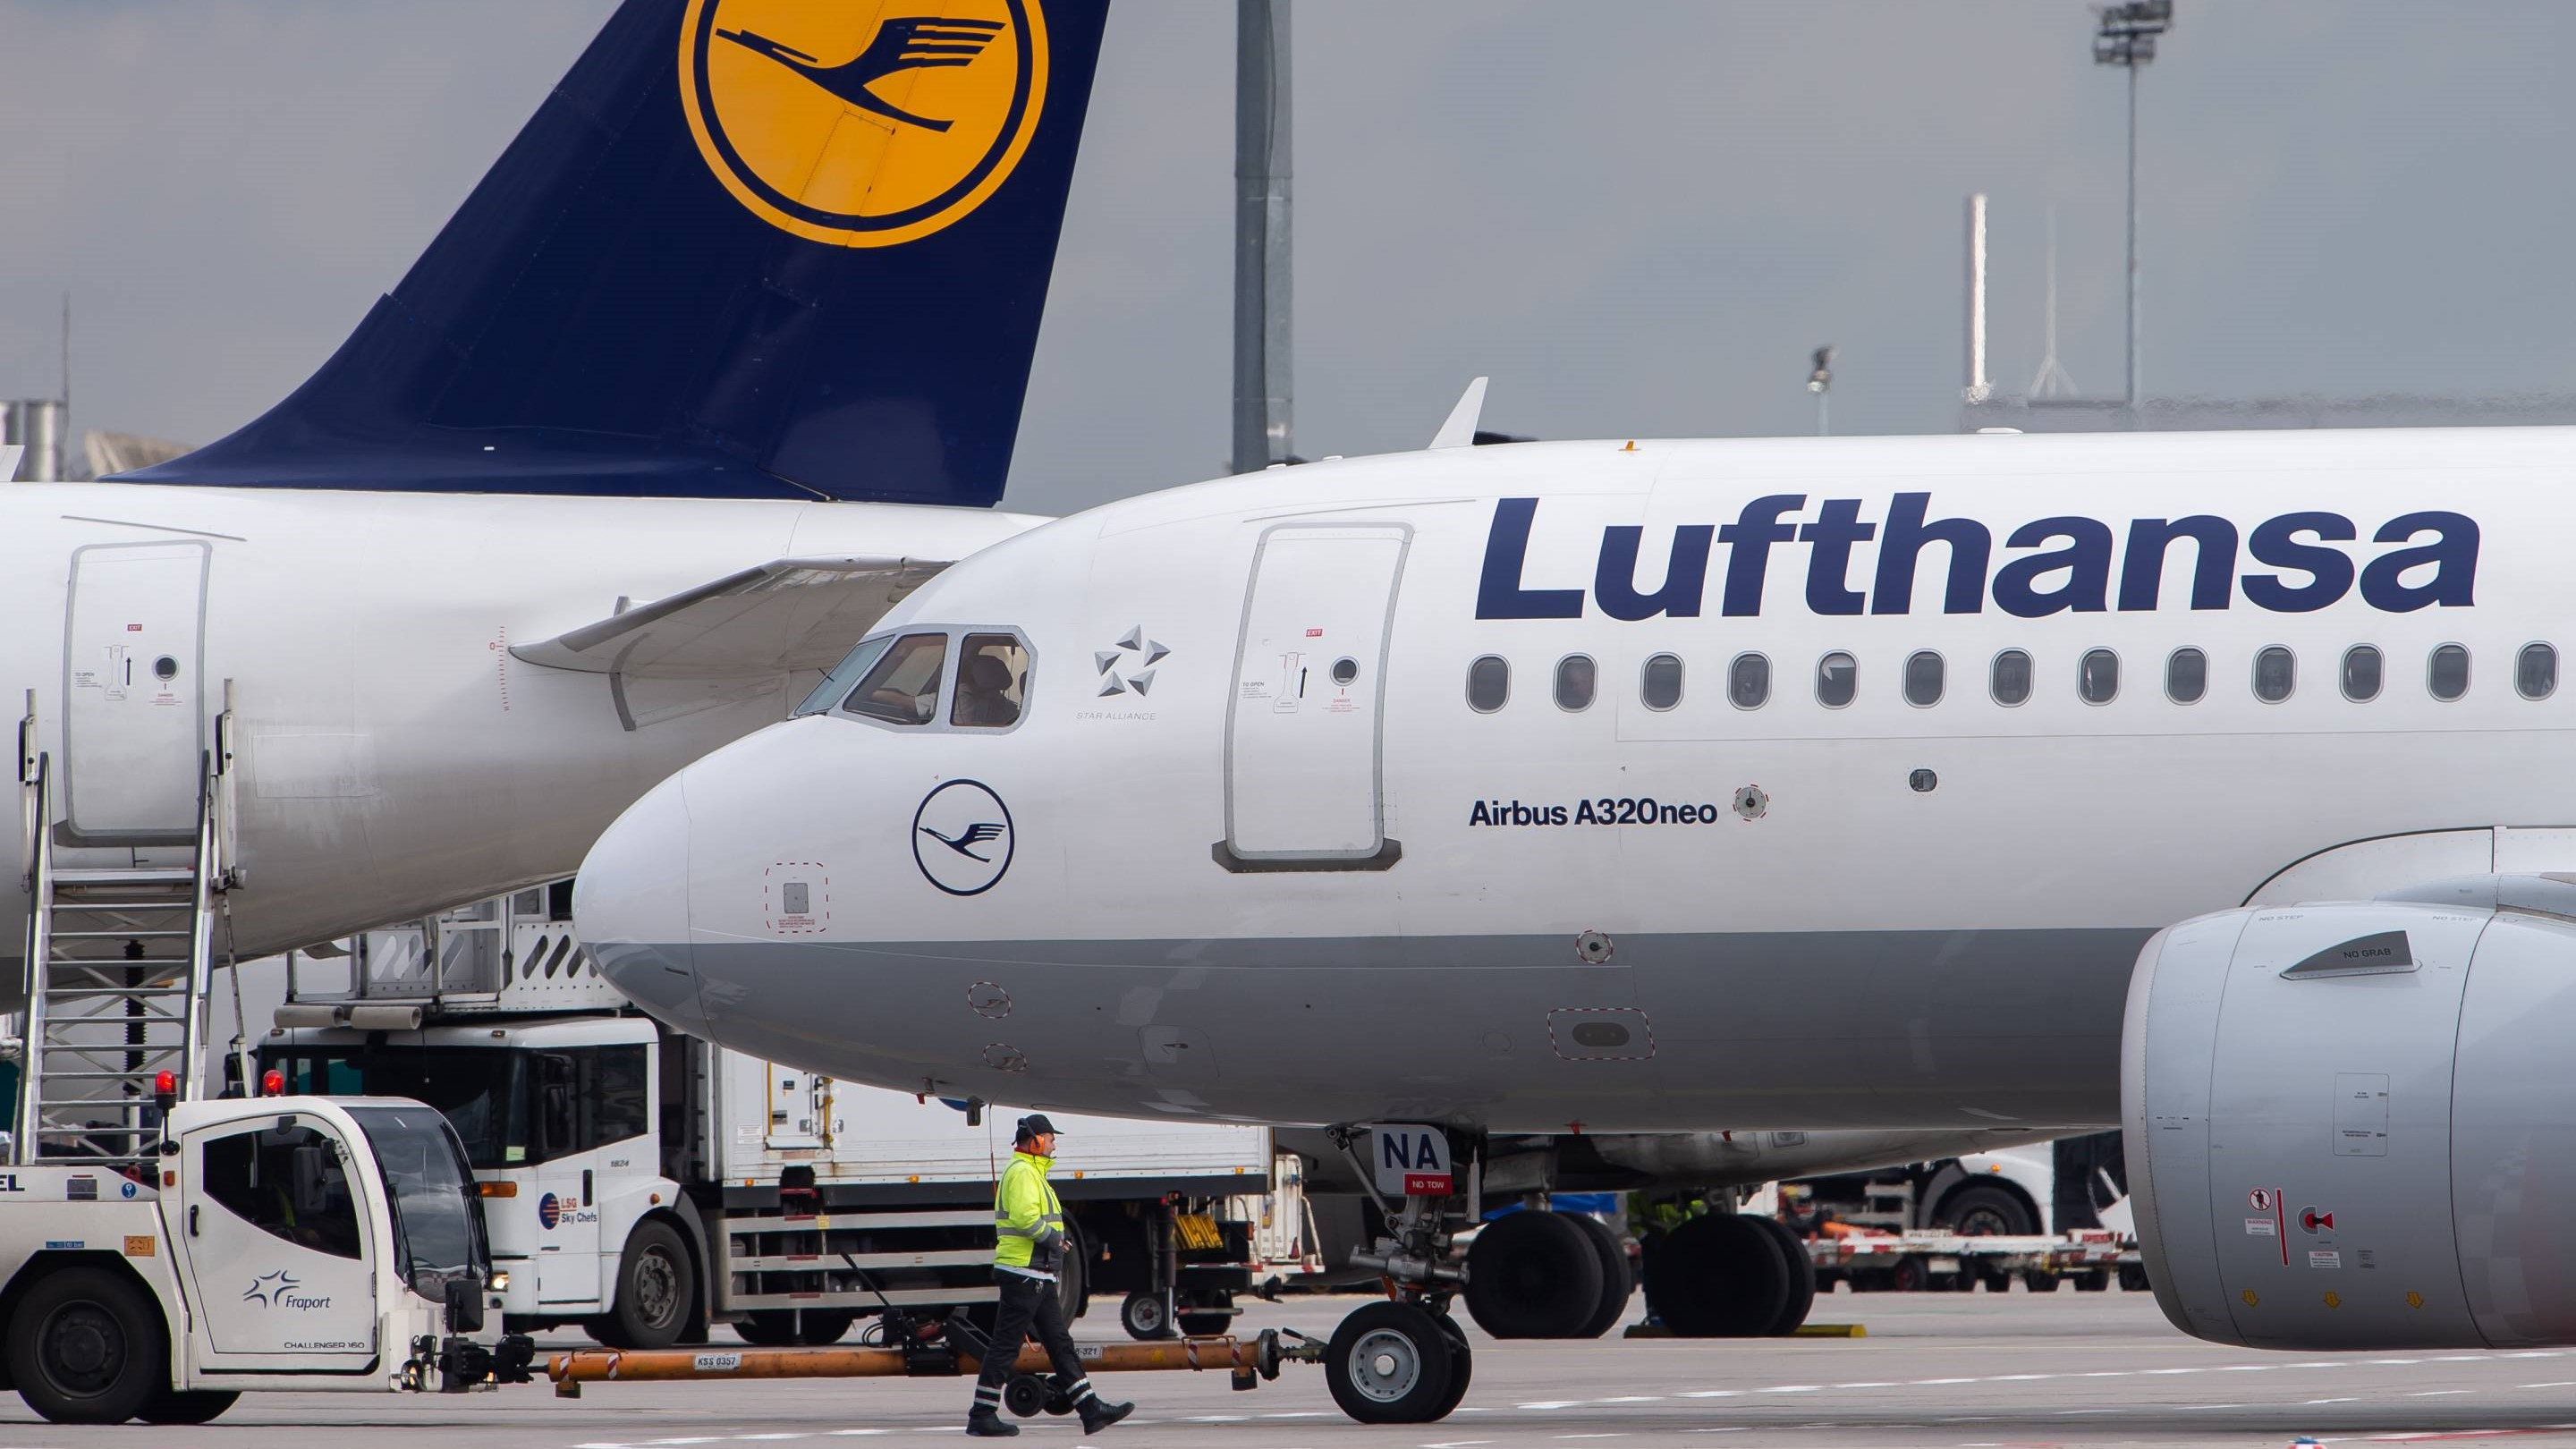 Lufthansa remain cautious despite historical second best financial performance ever 1